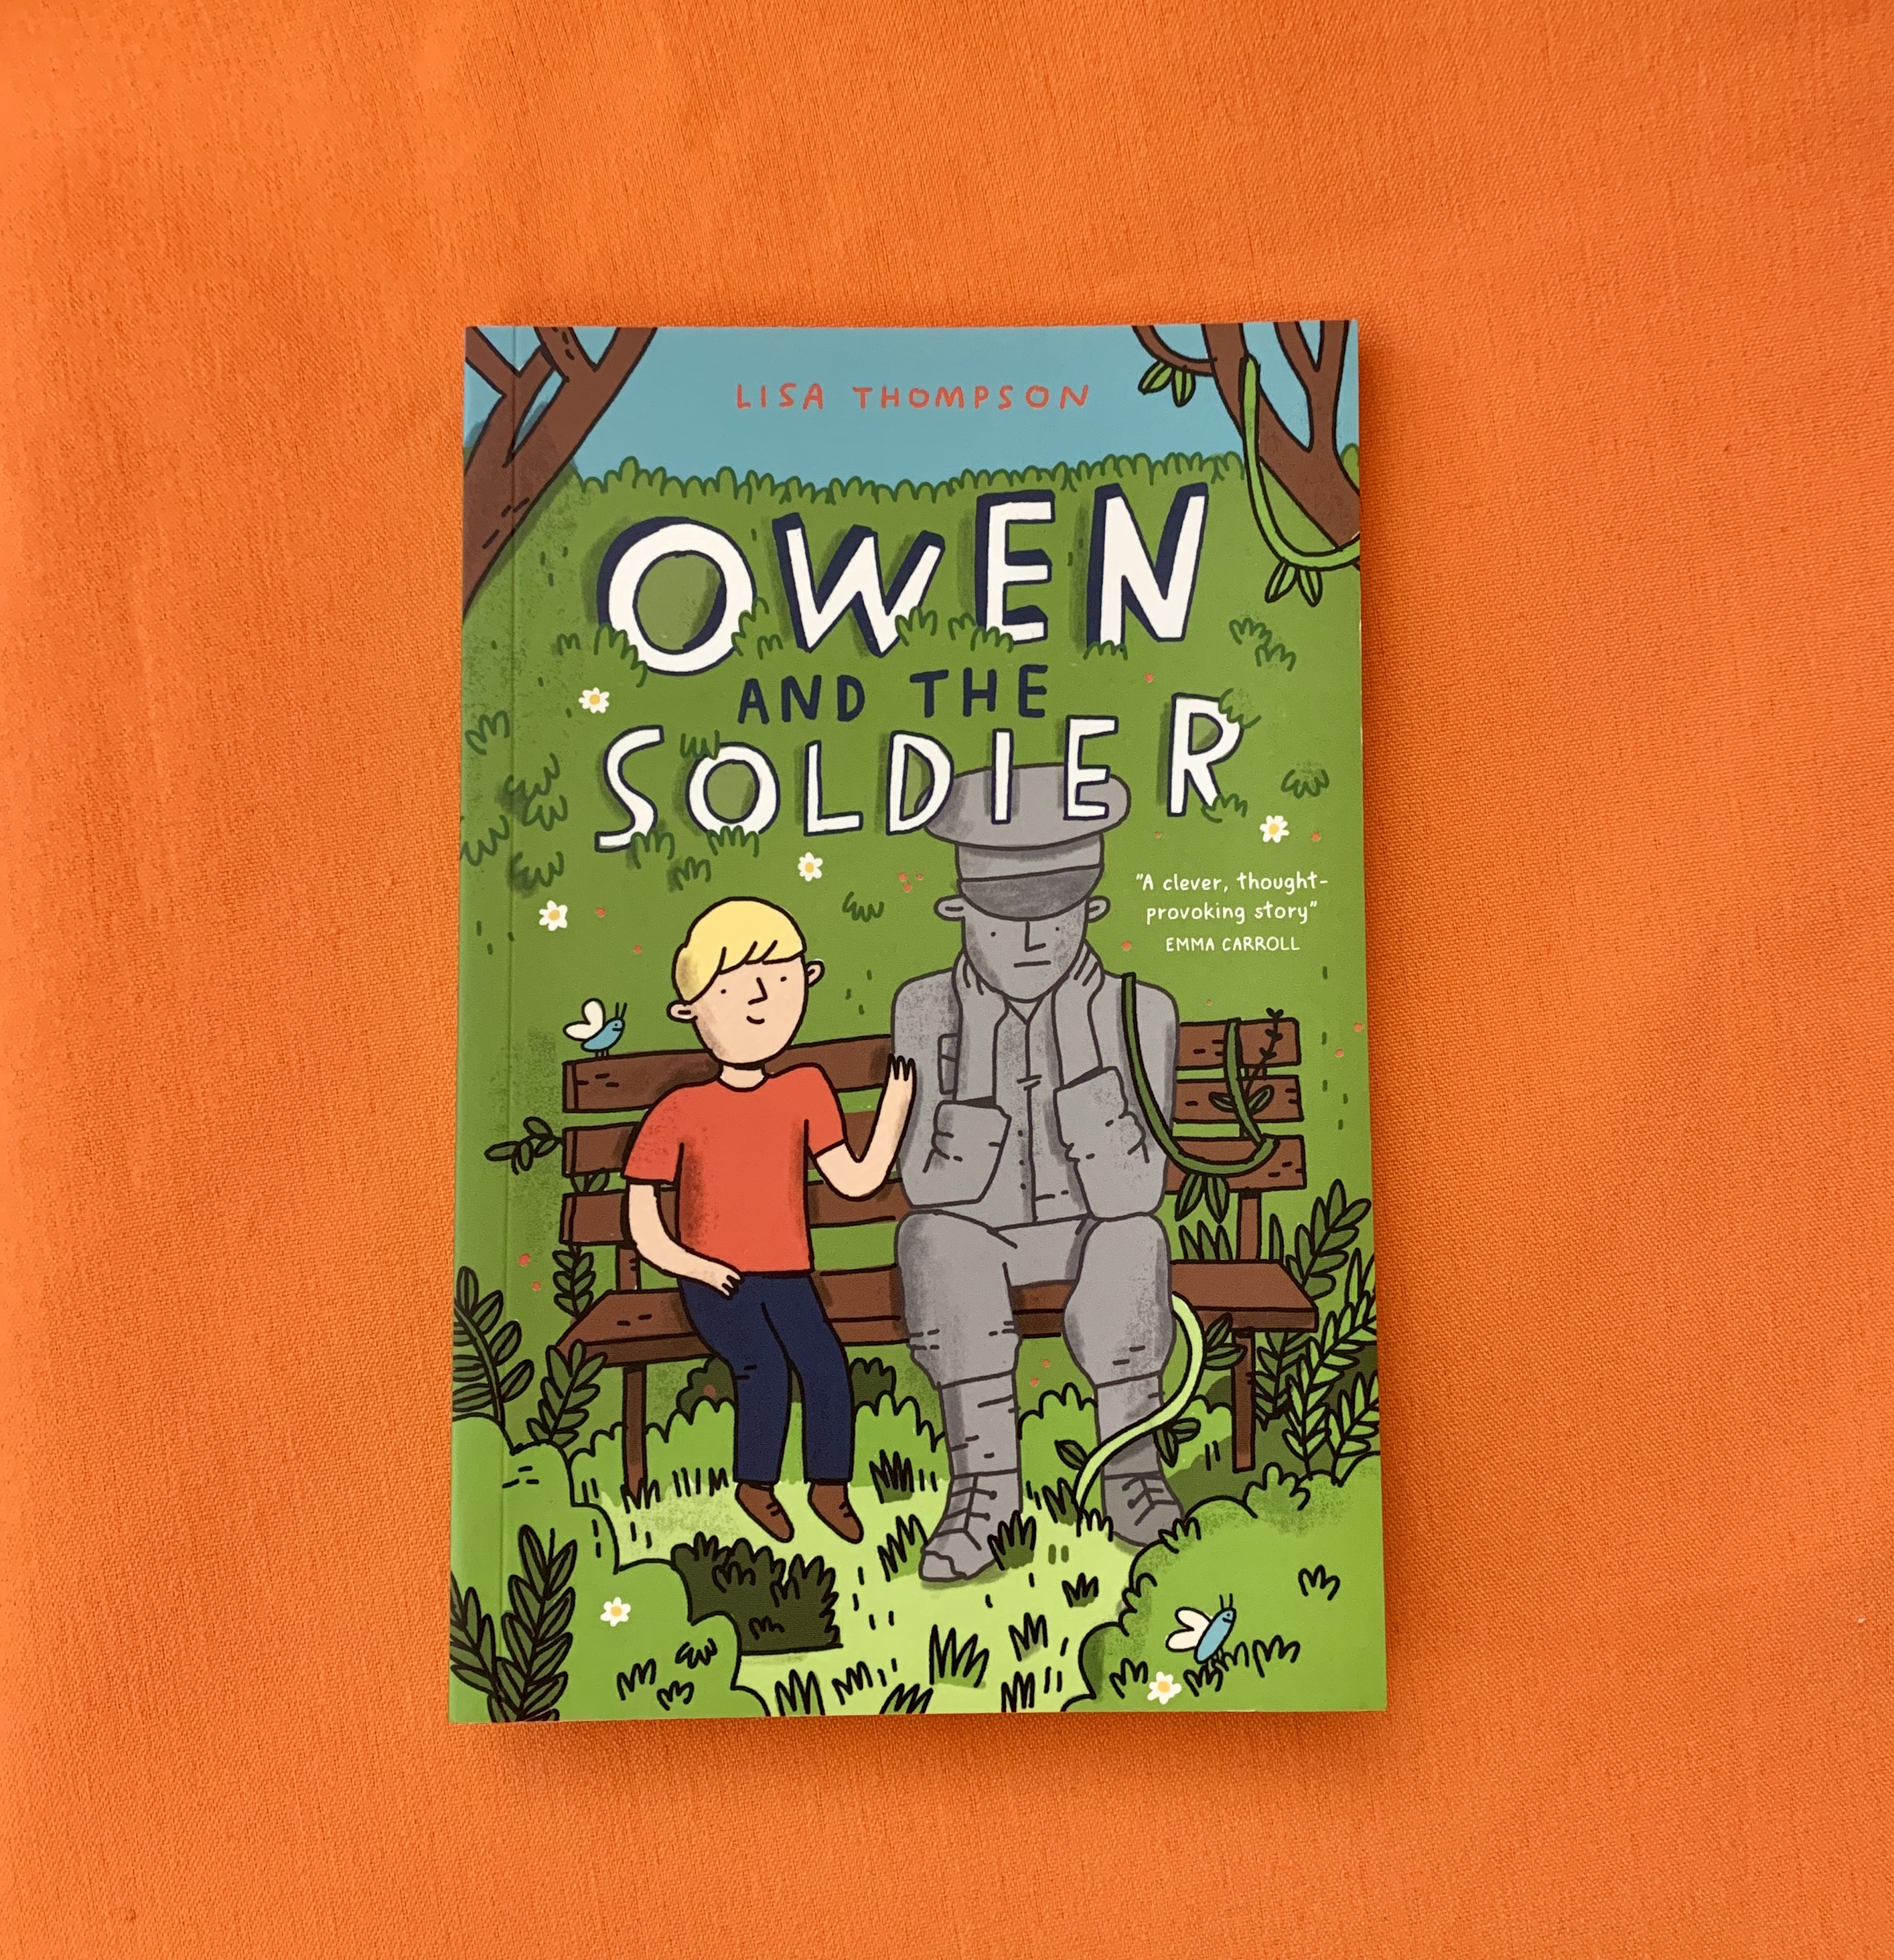 A photograph of Owen and the Soldier on an orange background